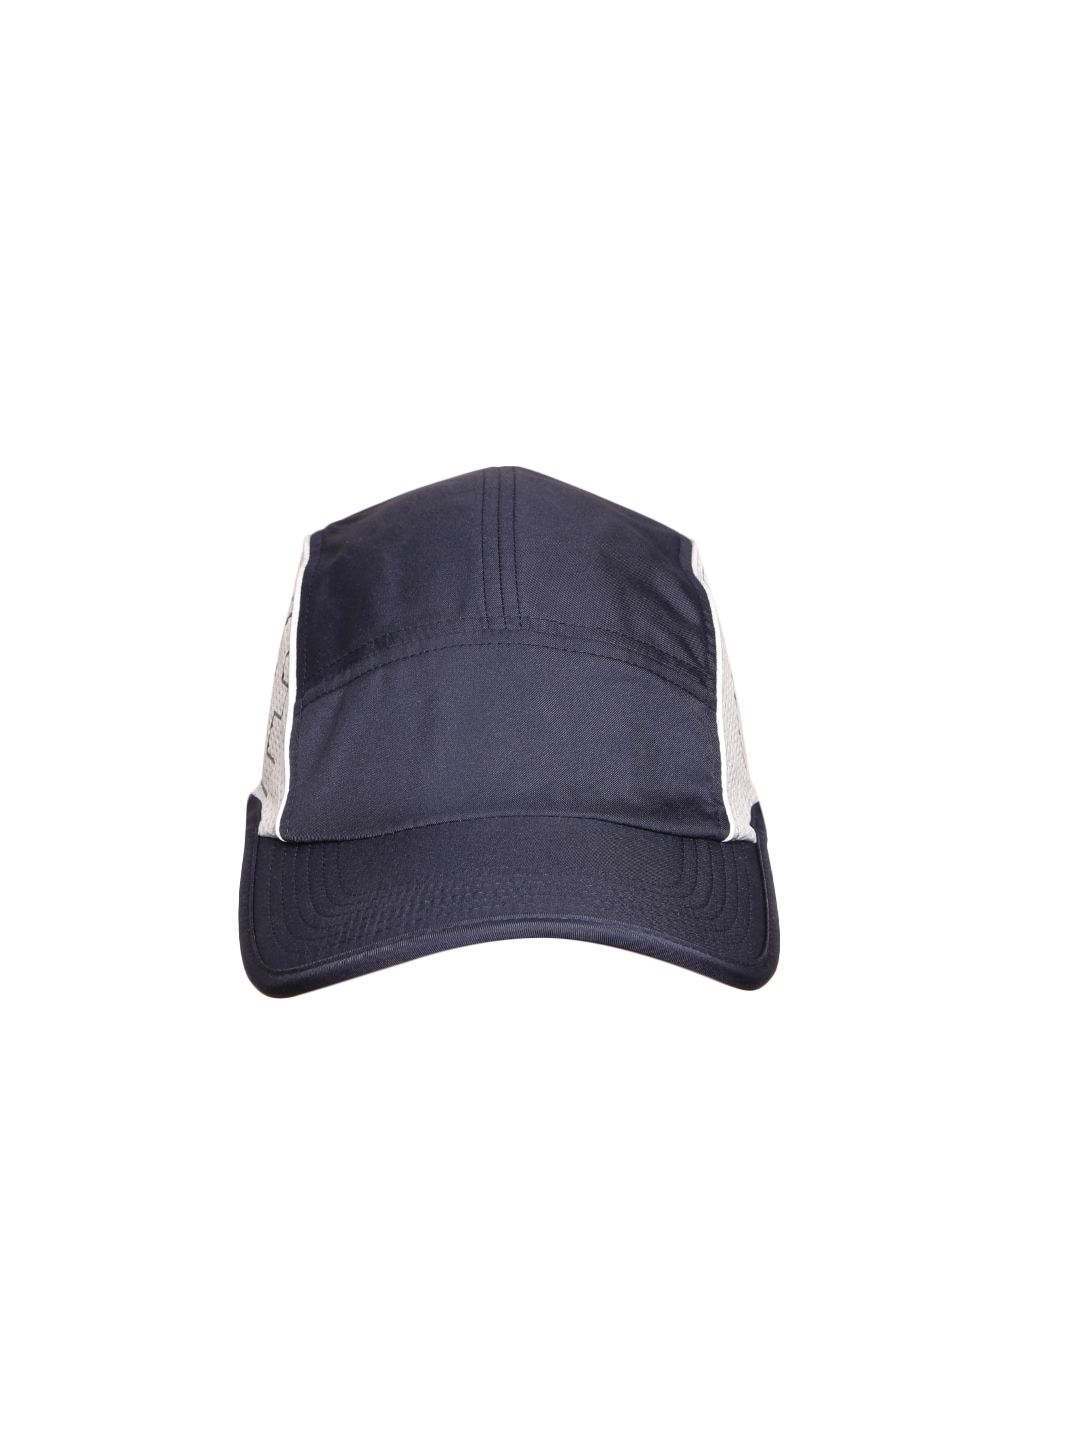 308937850d6 Hats   Caps For Men - Shop Mens Caps   Hats Online at best price ...